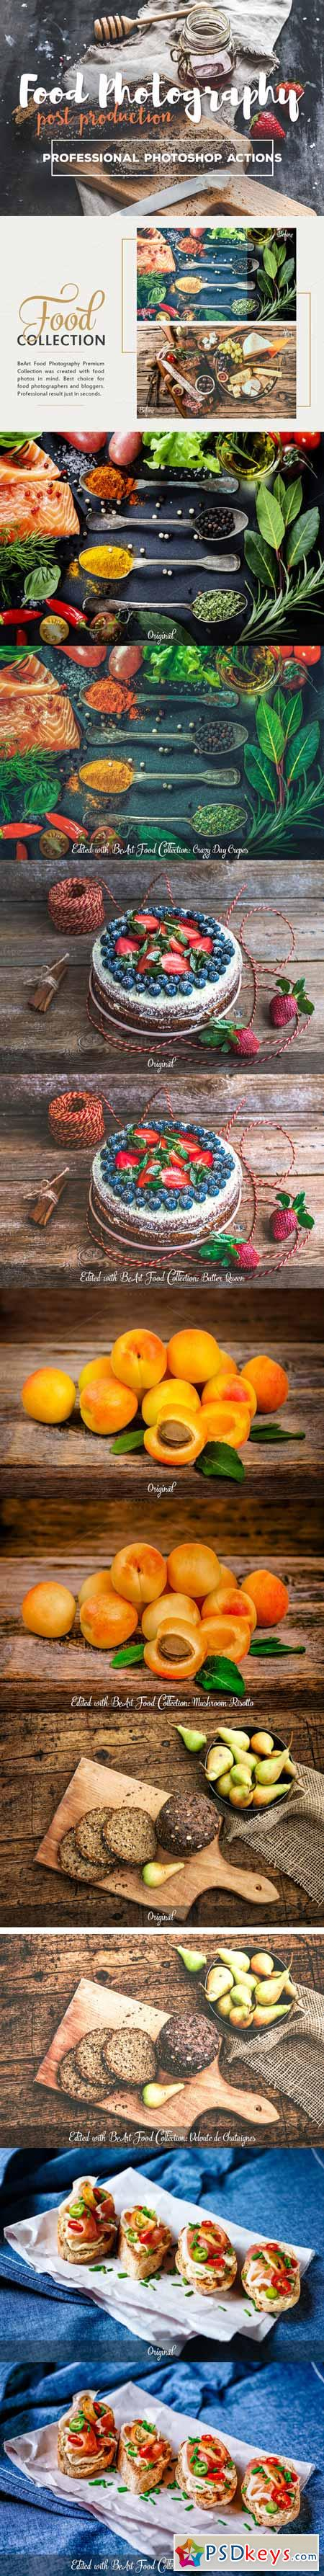 Food Photography Photoshop Actions 417932 » Free Download Photoshop